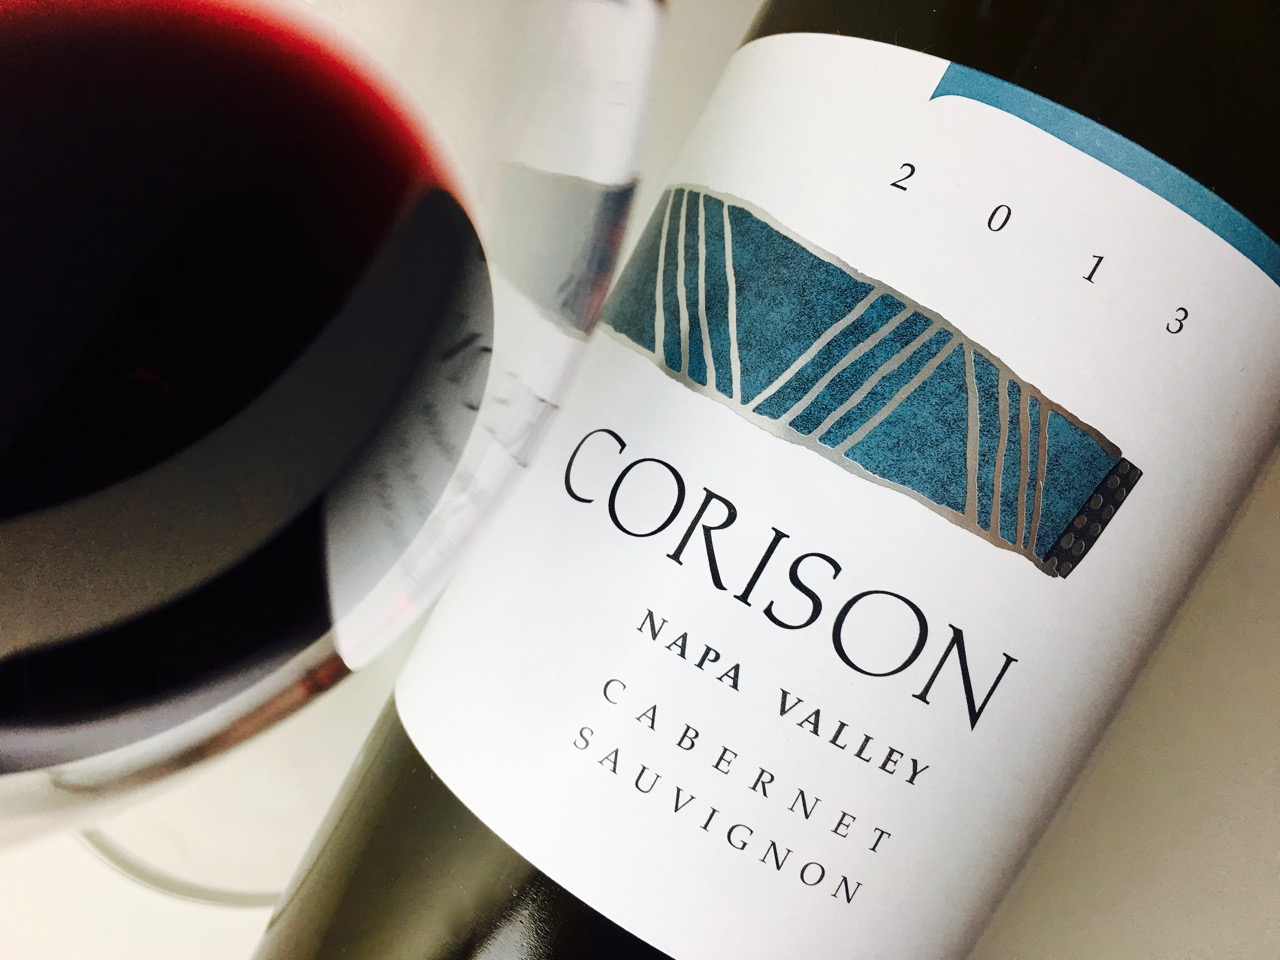 2013 Corison Winery Cabernet Sauvignon Napa Valley